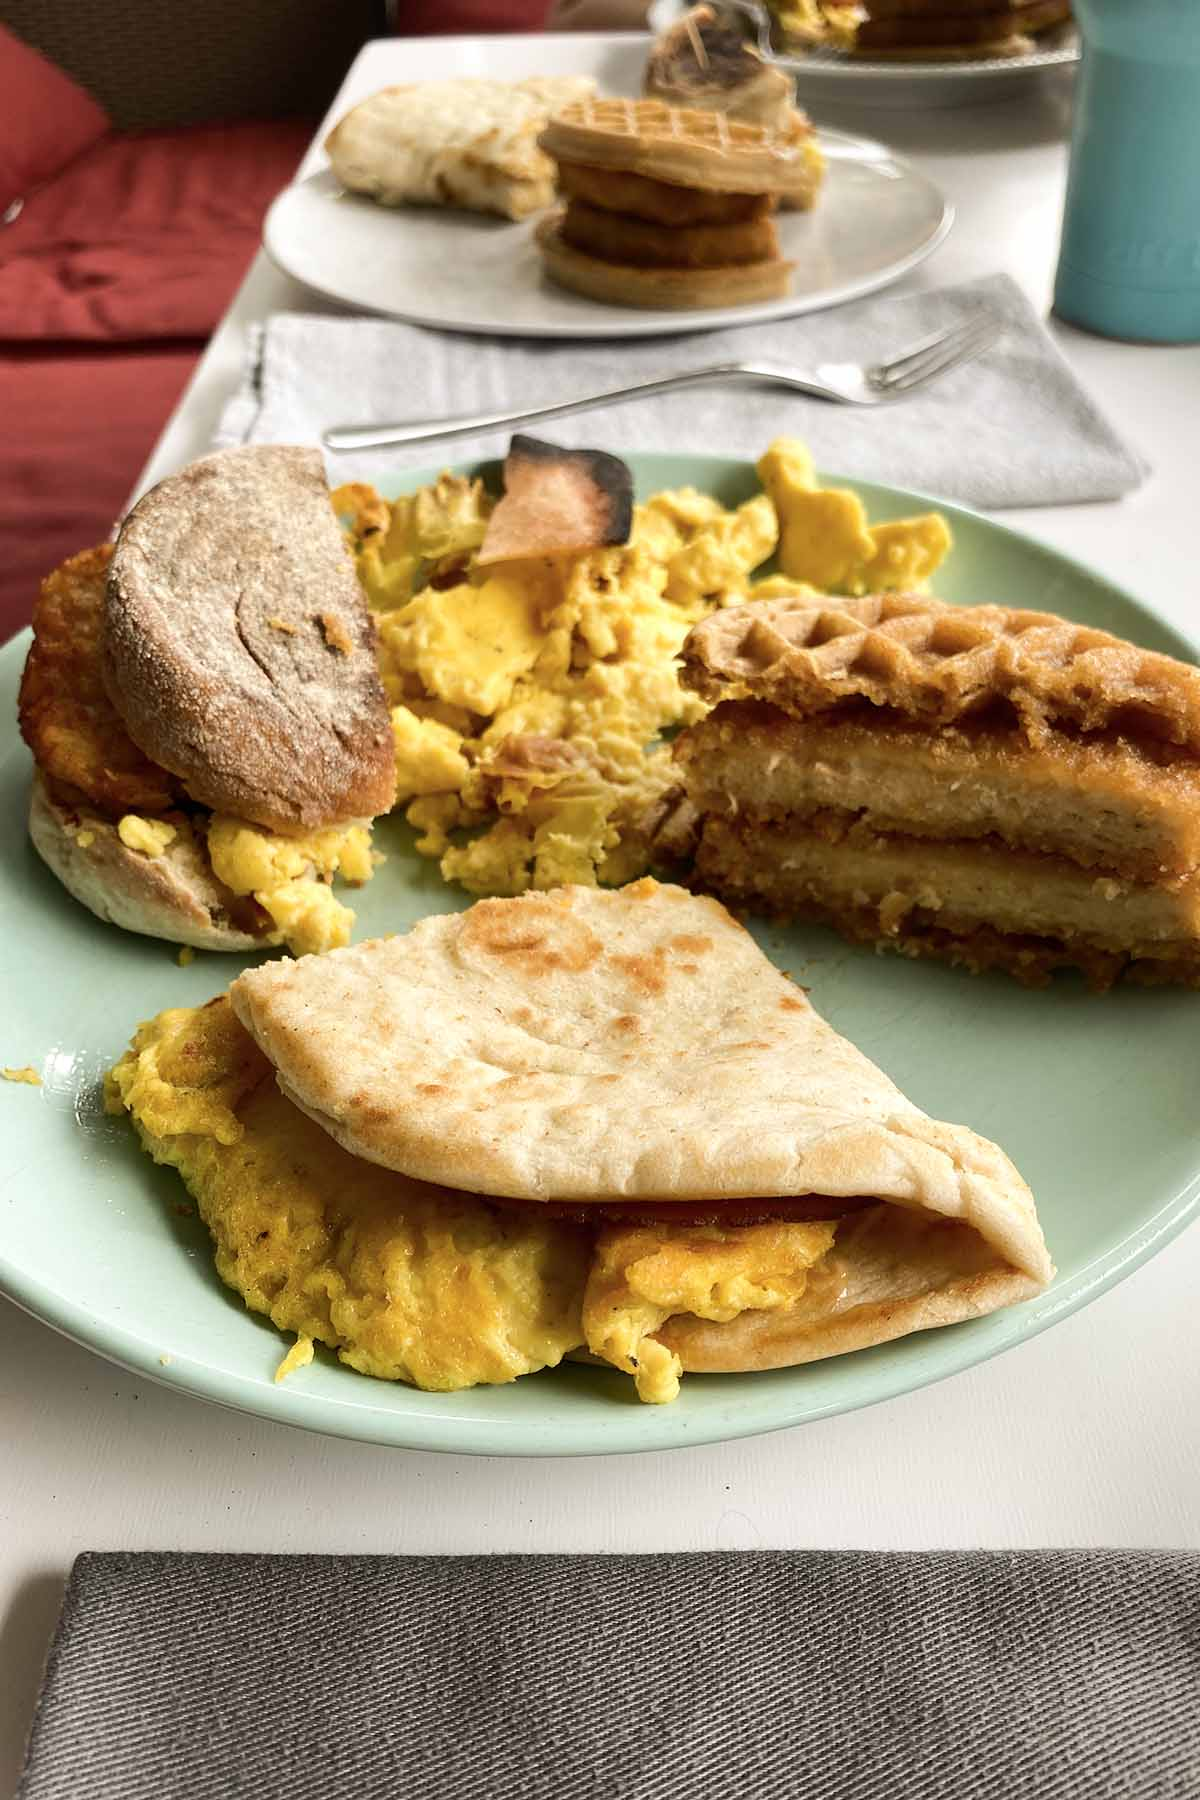 blue plate with three vegan breakfast sandwiches on it